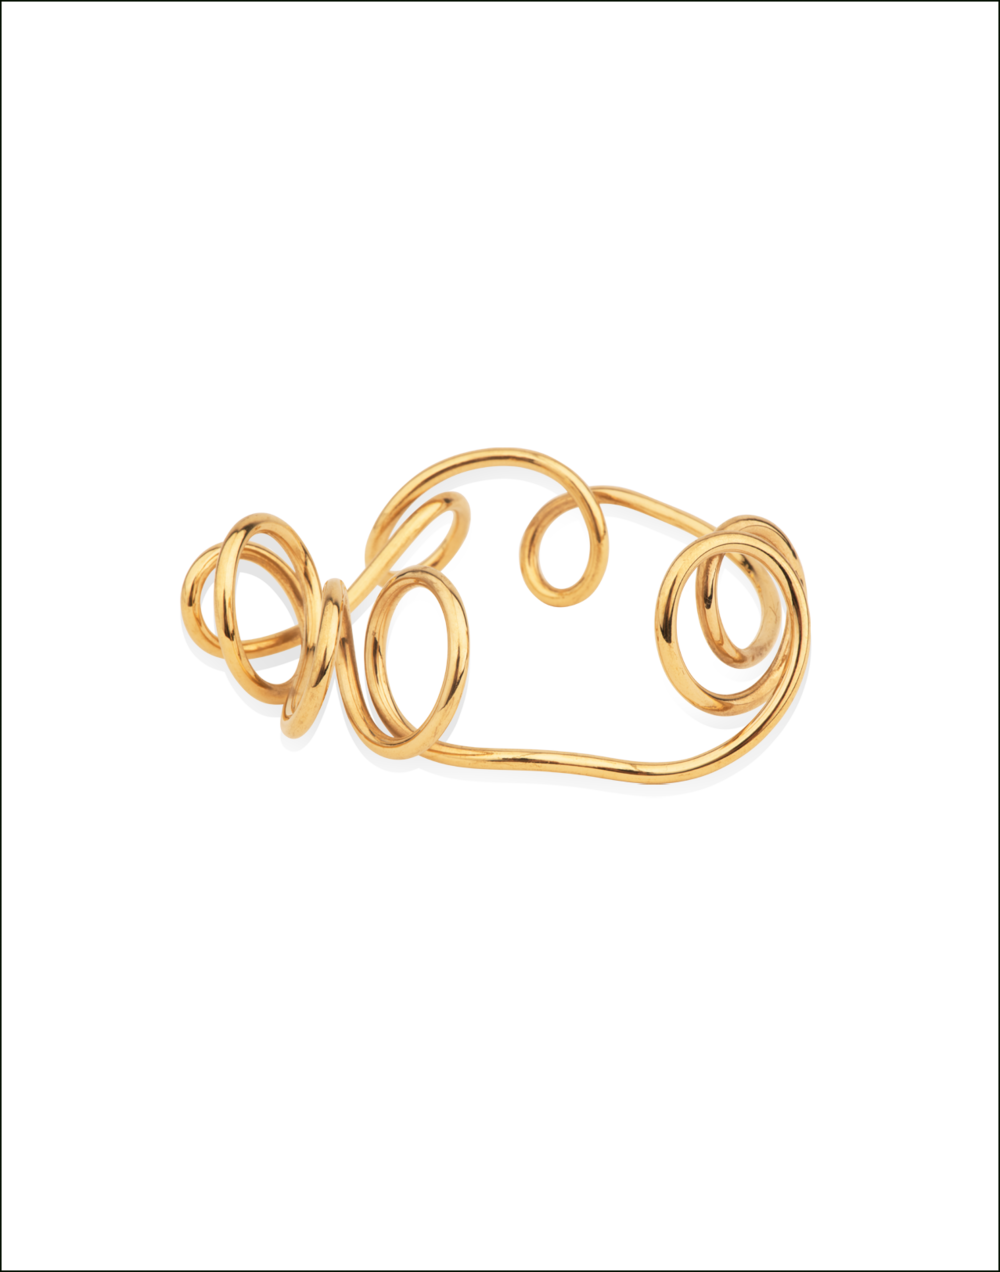 Completedworks-Cuff-Gold-Vermeil-An-Element-of-Suspense-2-1.png